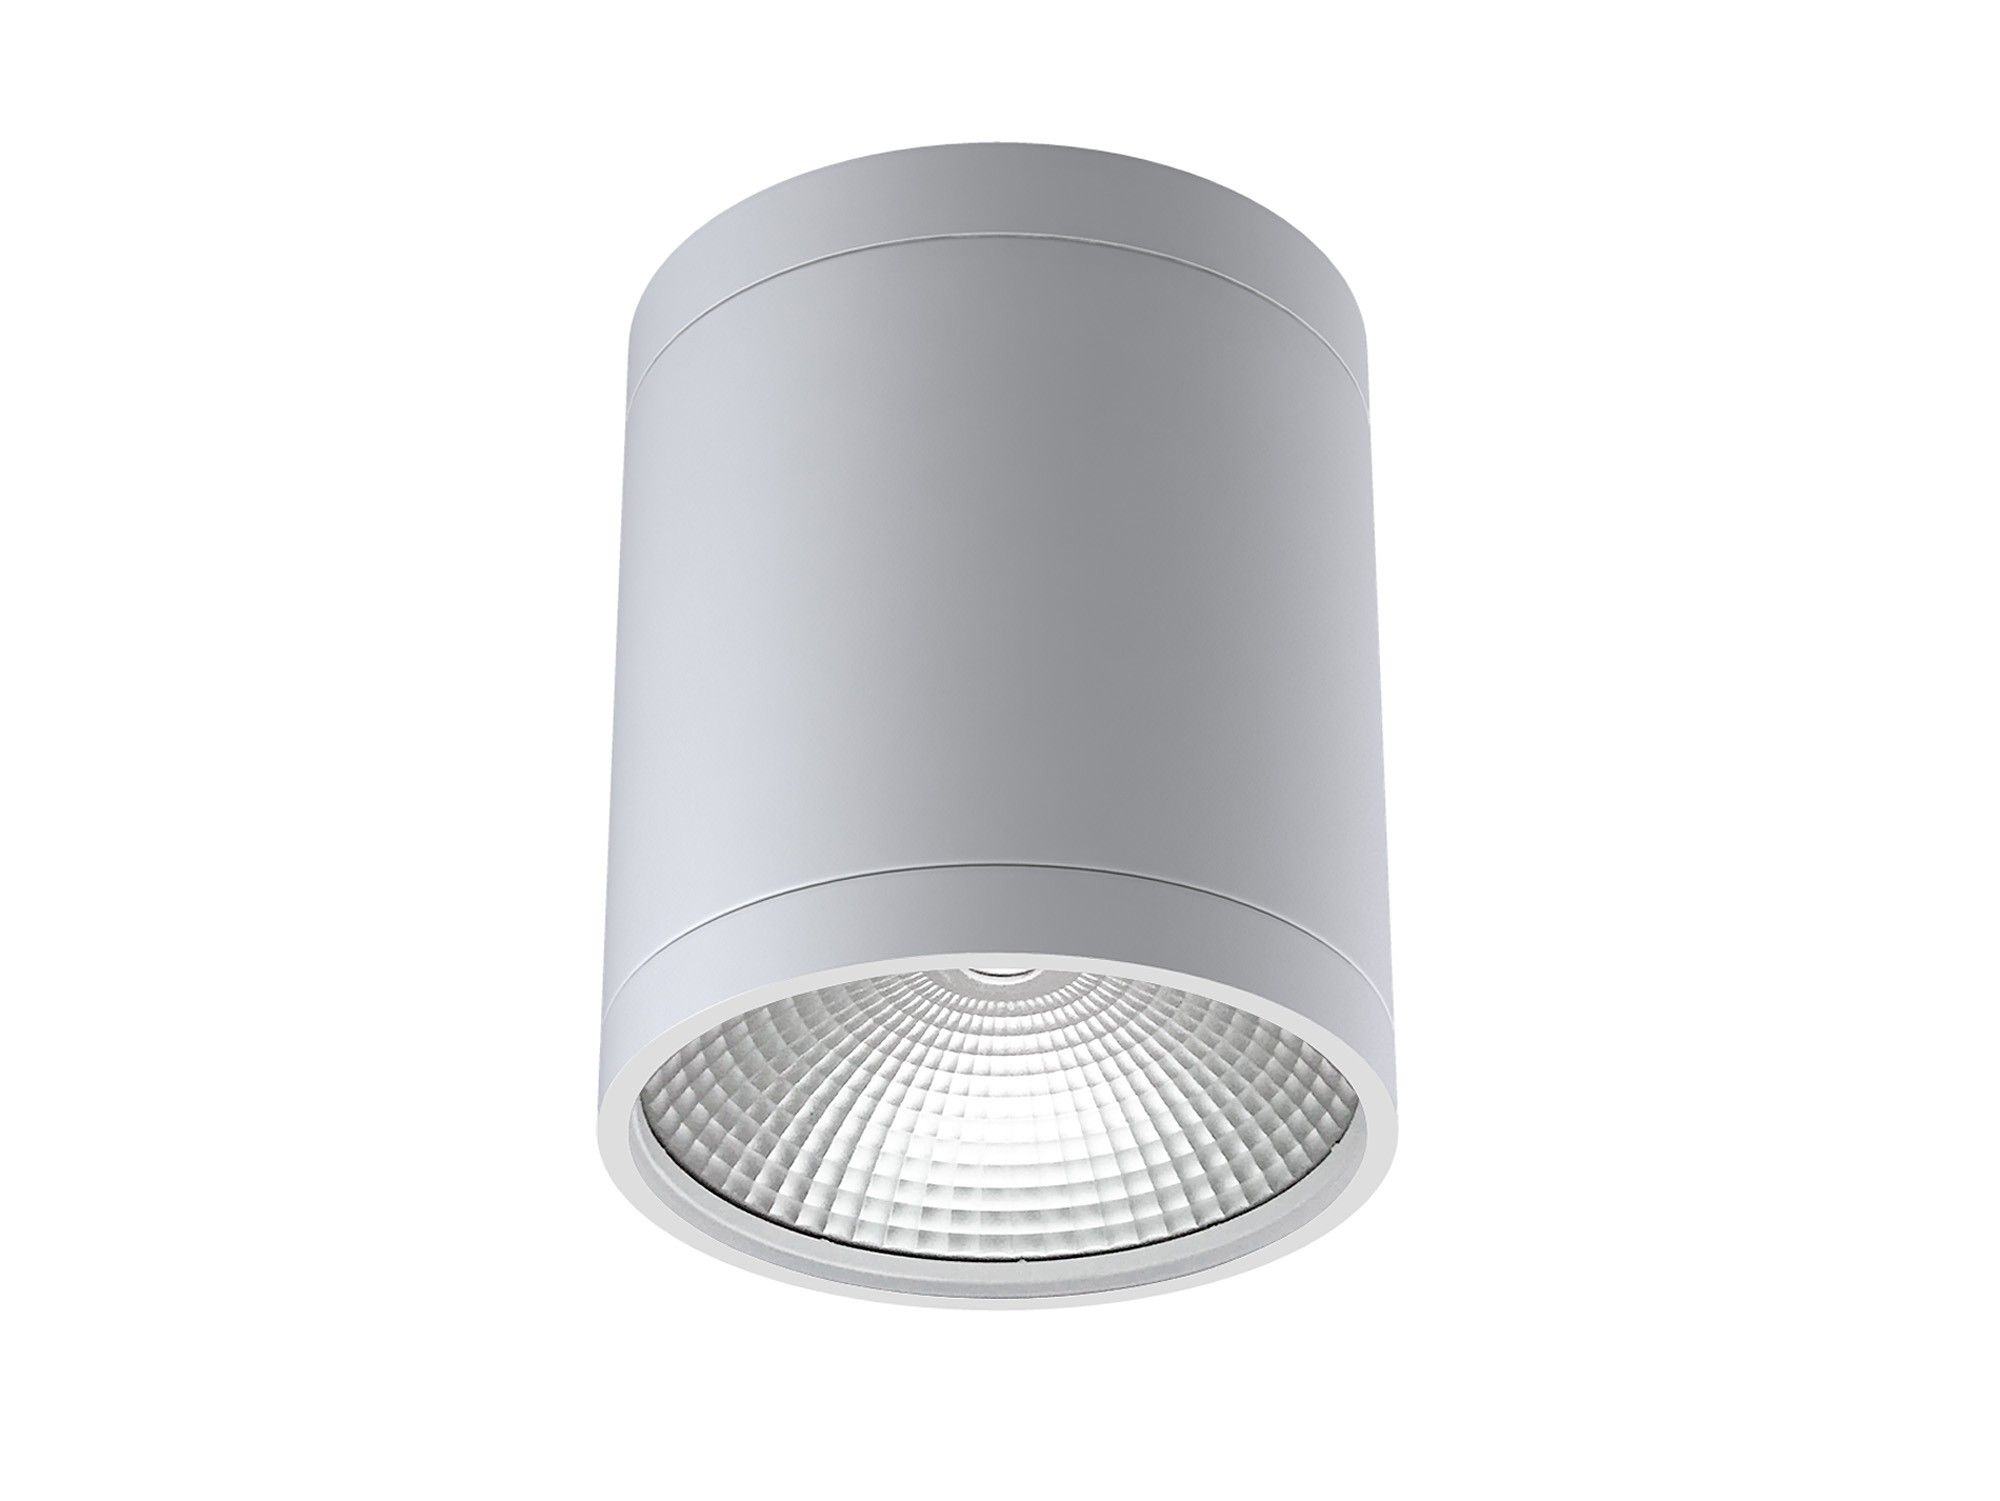 Alcon Lighting 11235-DIR Pavo Architectural LED 4 Inch Round ...